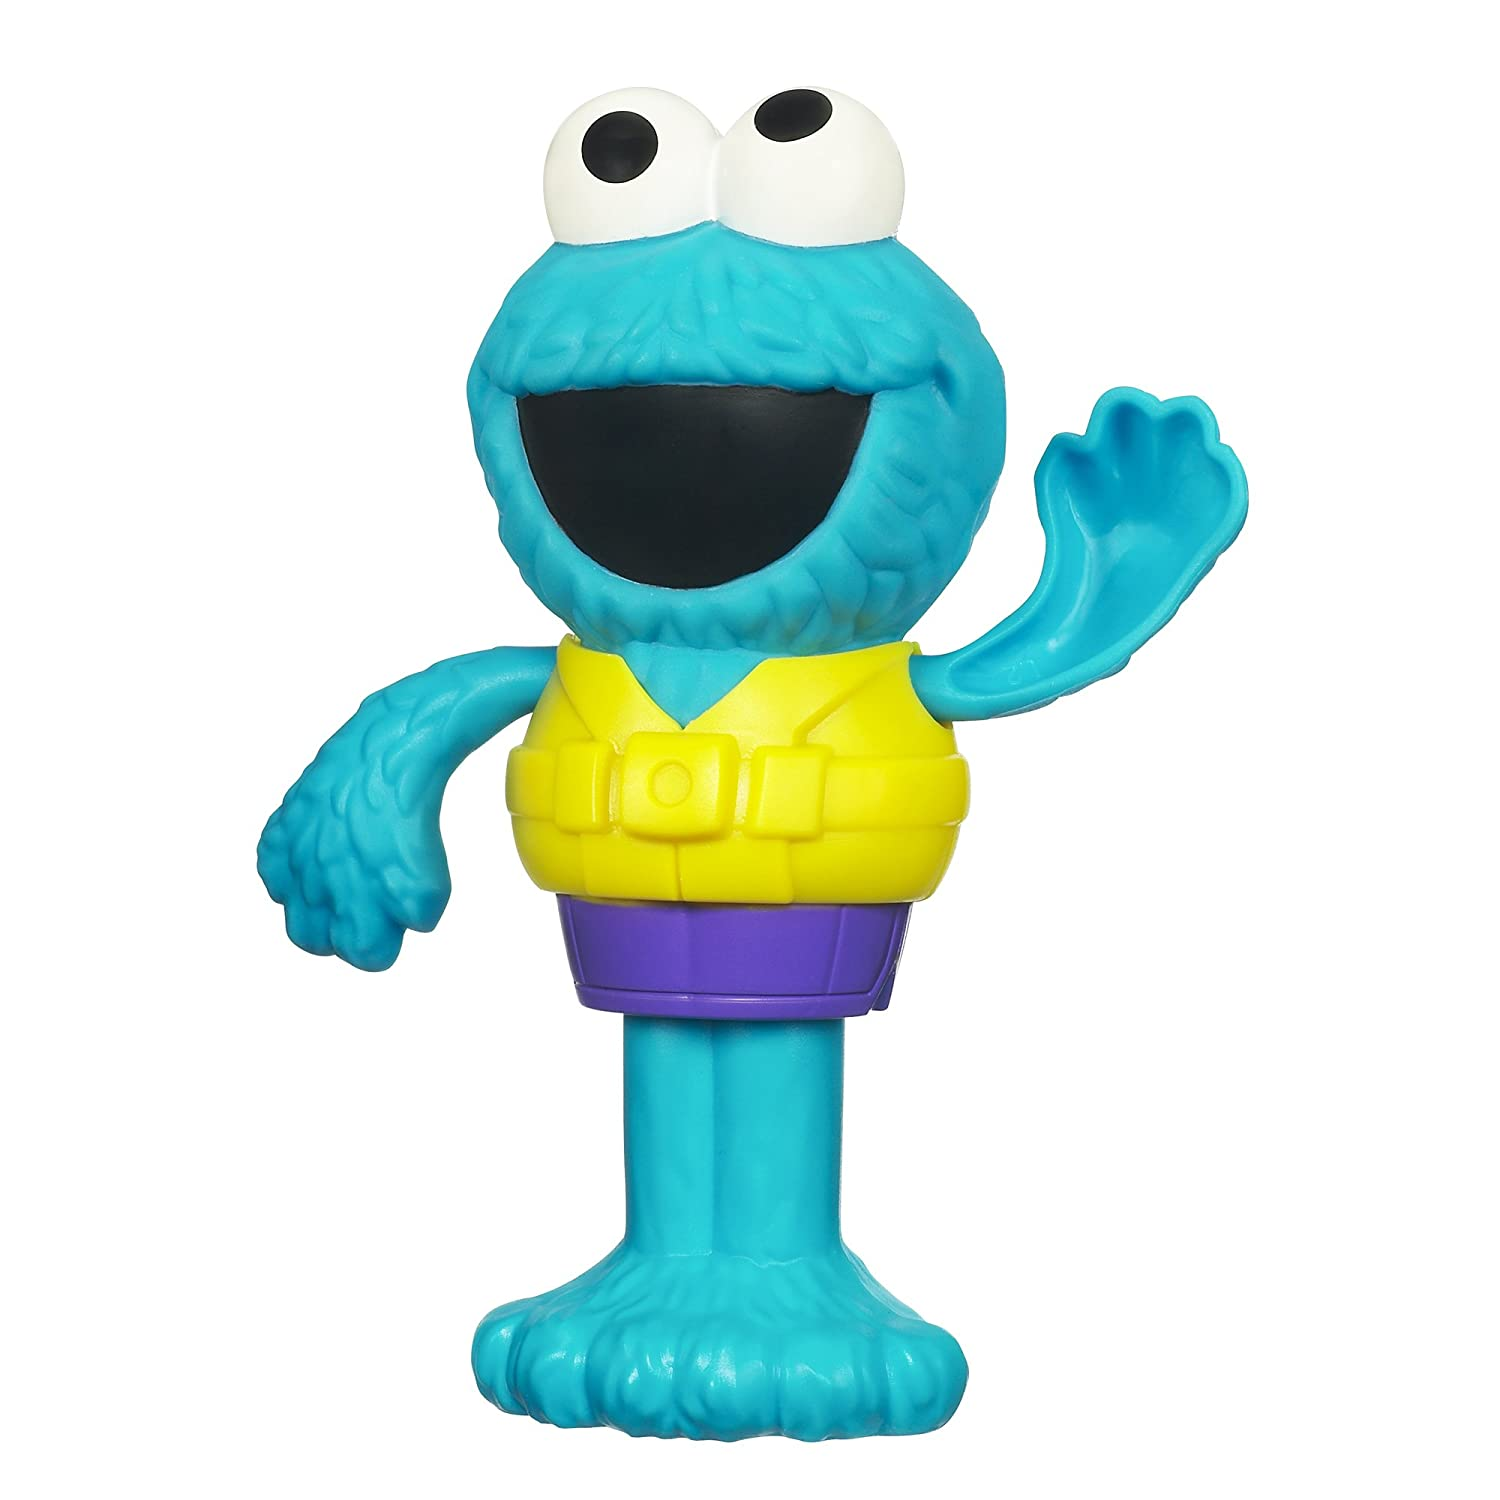 Sesame Street Cookie Monster Silly Swimmer by Sesame Street